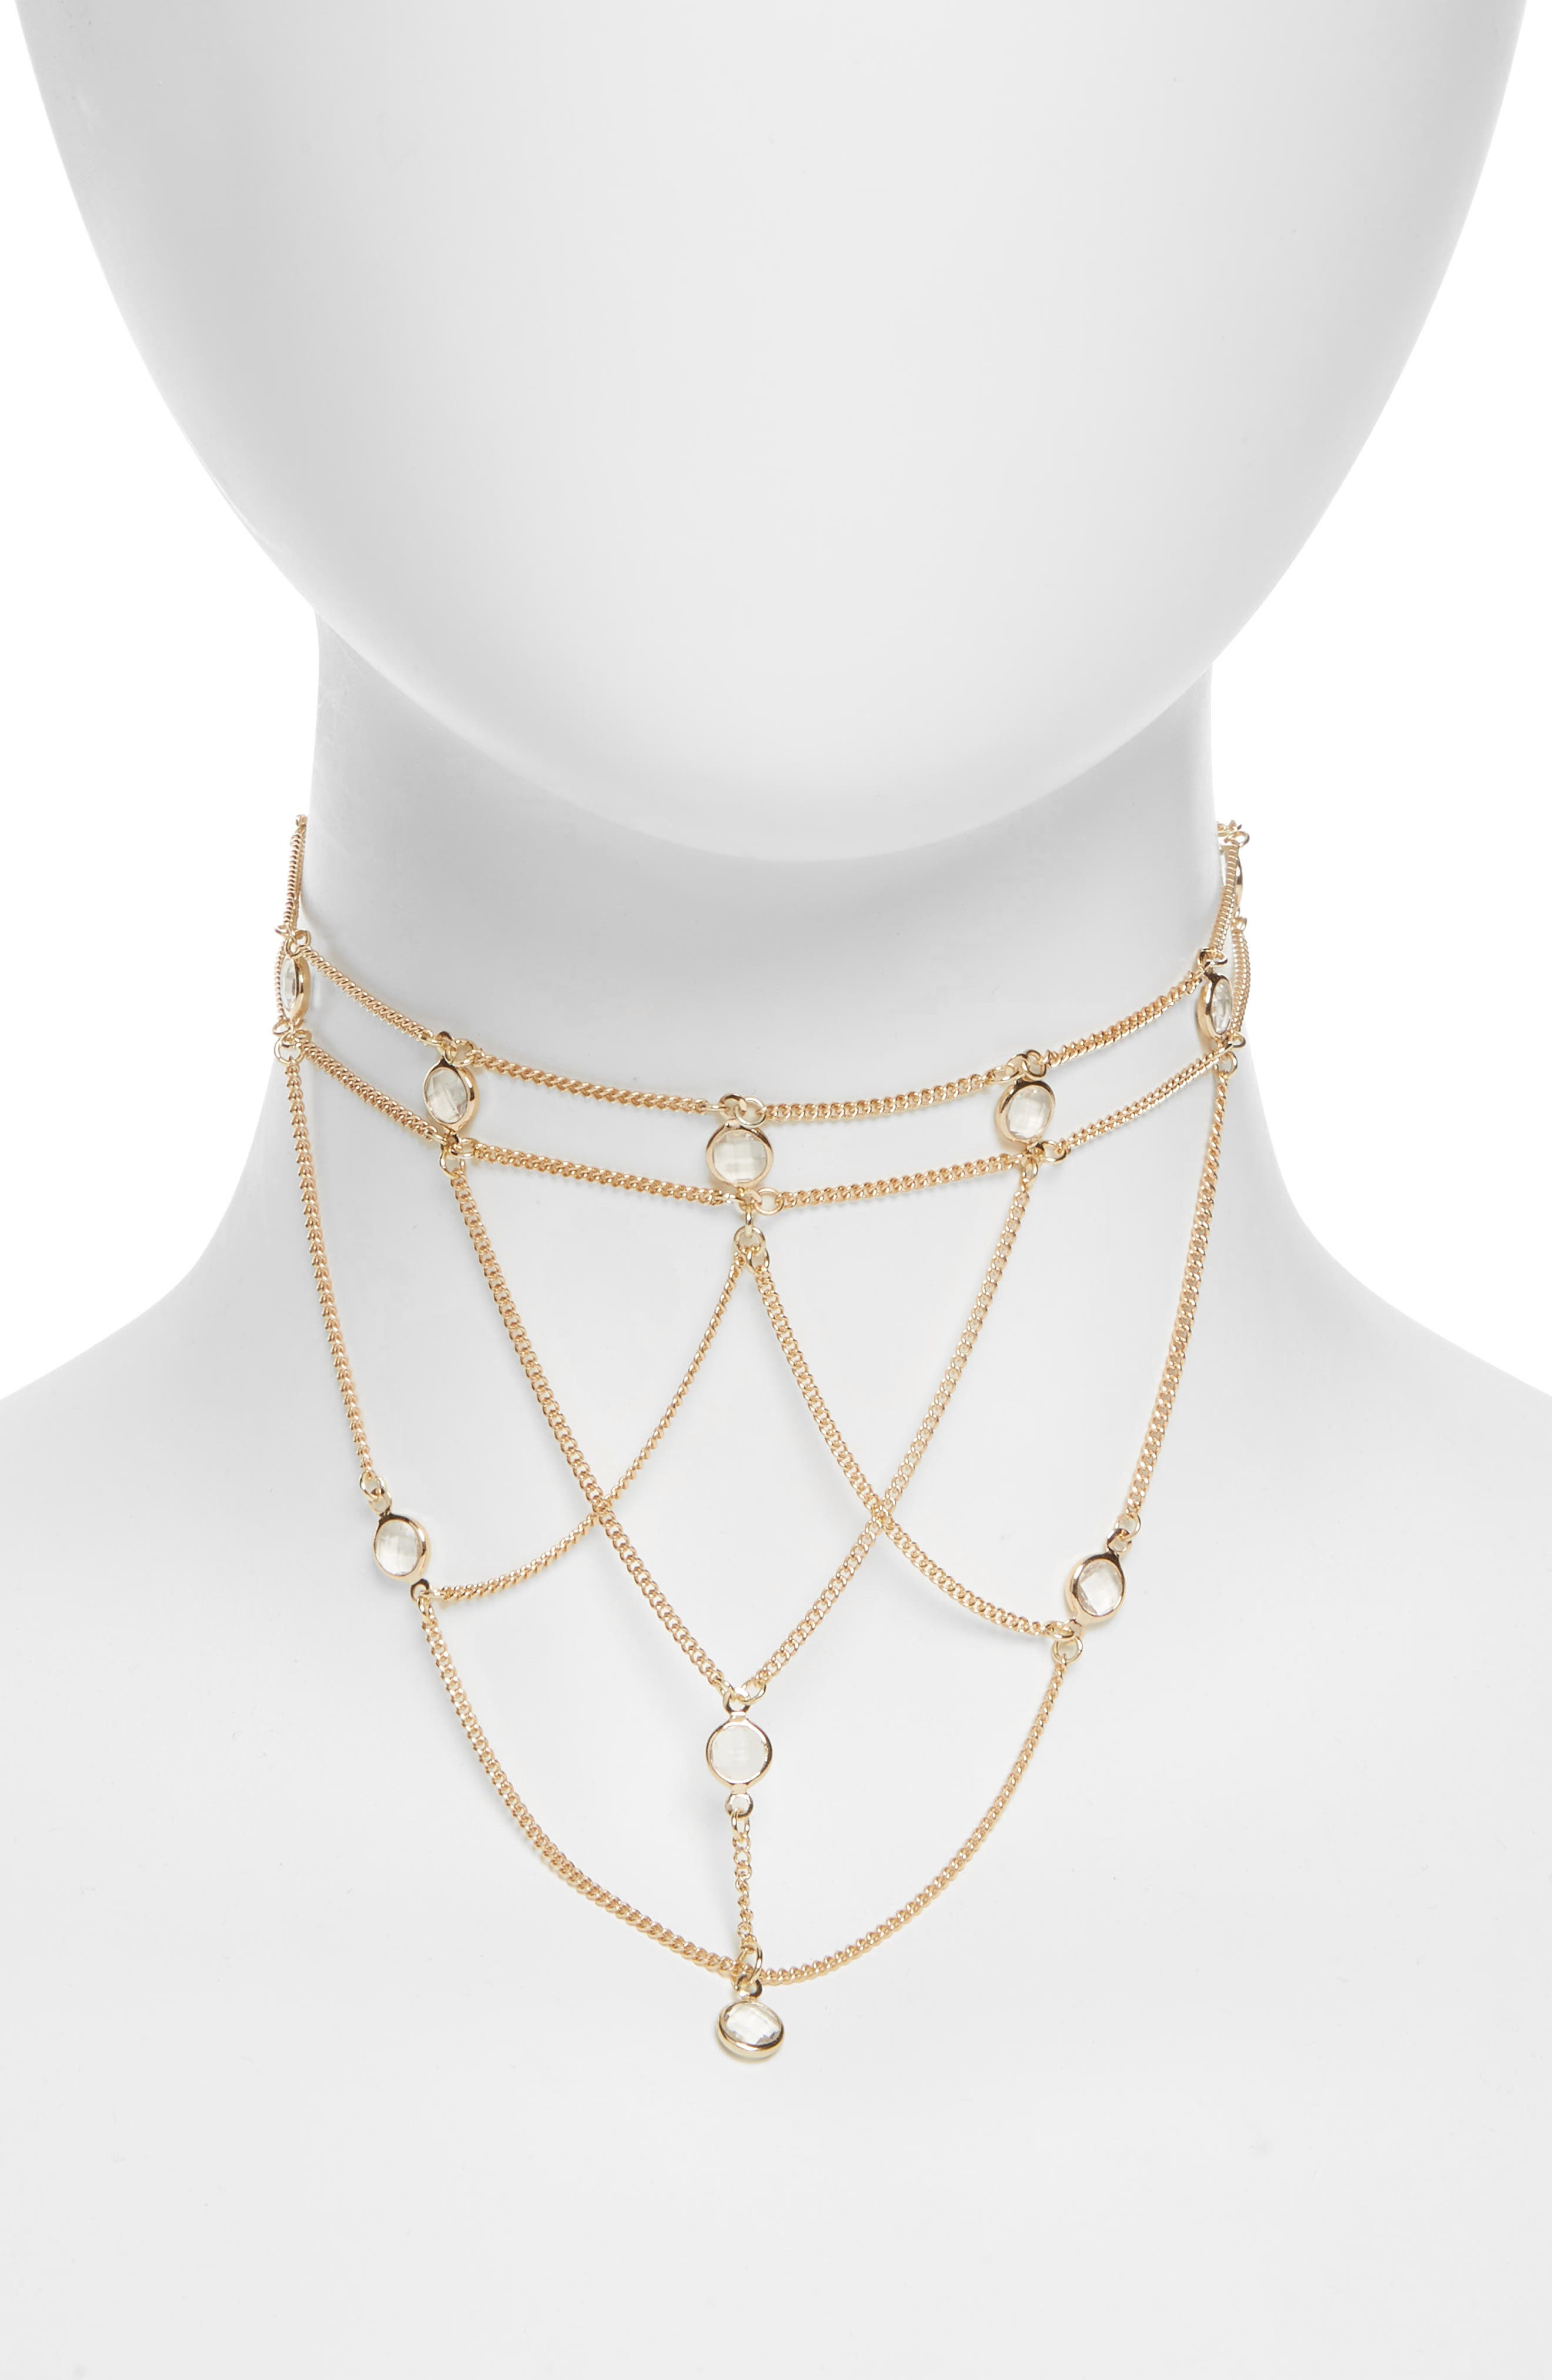 Cage Choker Necklace,                         Main,                         color, Gold